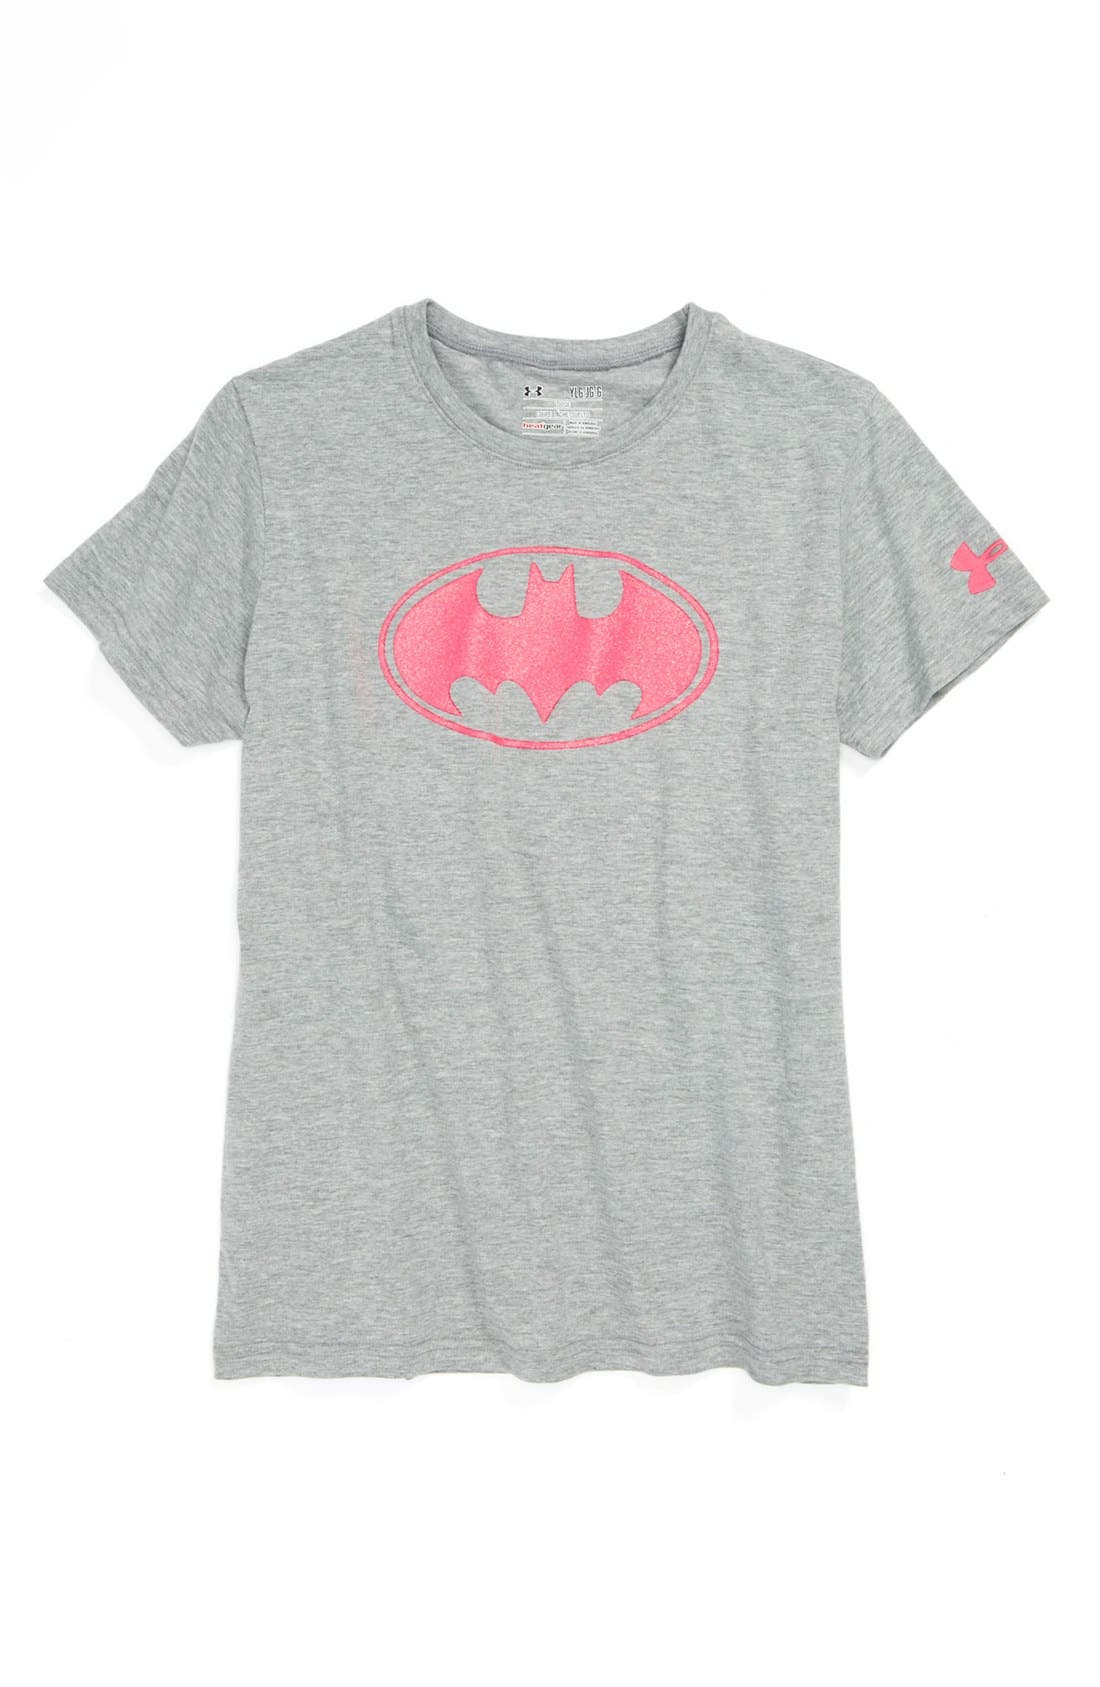 Main Image - Under Armour 'Batman' Charged Cotton® Tee (Little Girls & Big Girls)